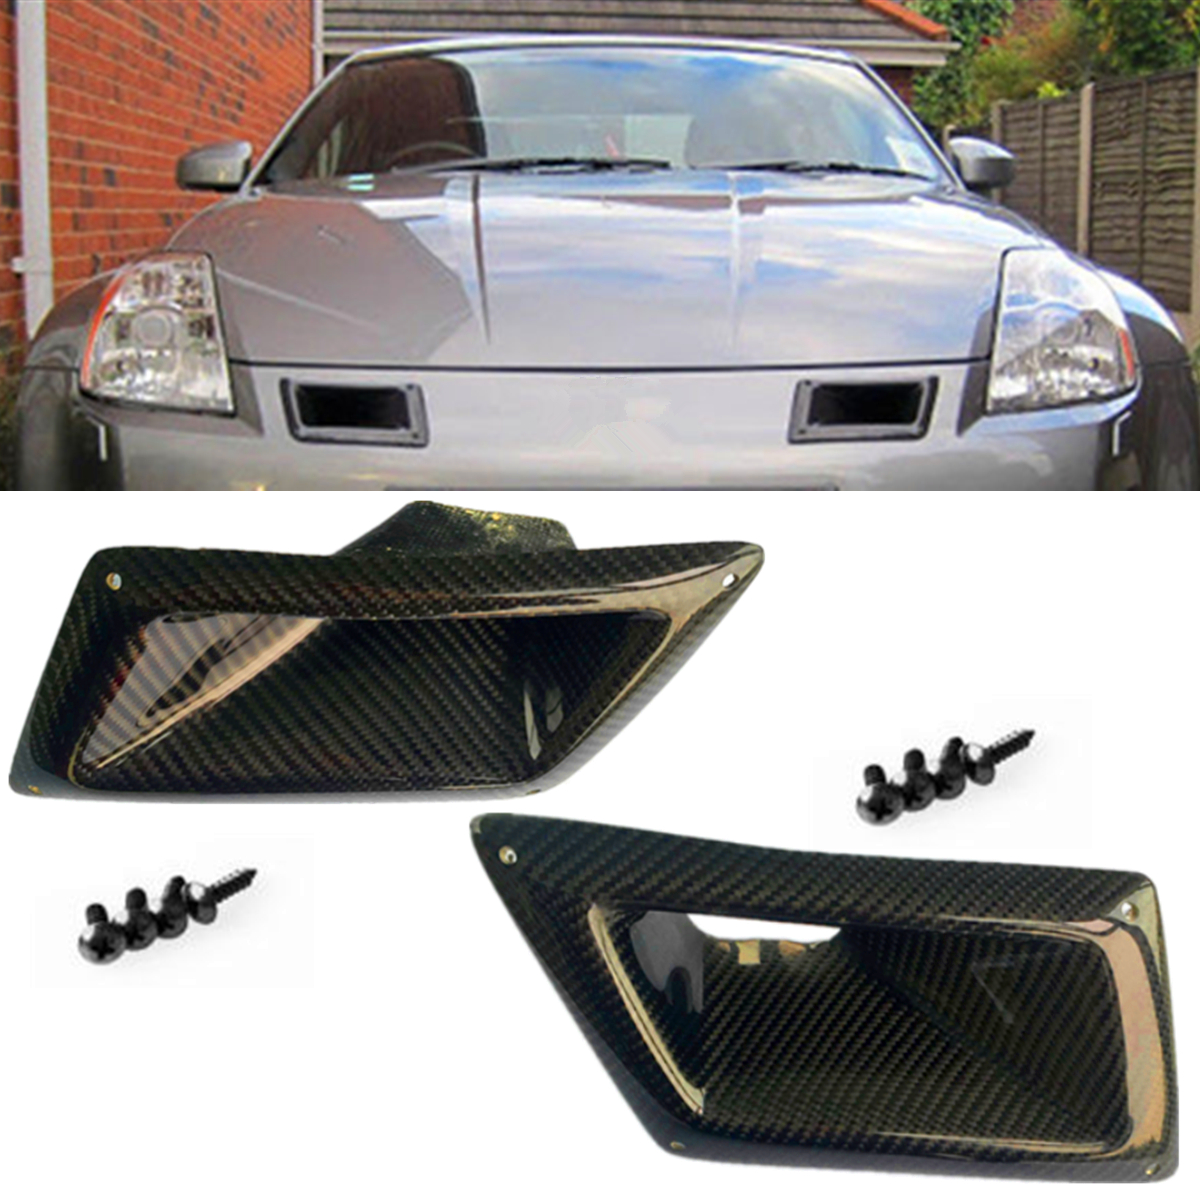 1Pair Real Carbon Fiber Front Bumper Air Vents Cover Trim Ducts Intake Fit for Nissan 350Z Z33 ND 2003-2009 Decoration Hoods carbon fiber dial dash cover glossy fibre finish interior accessories trim fit for nissan 350z z33 car styling